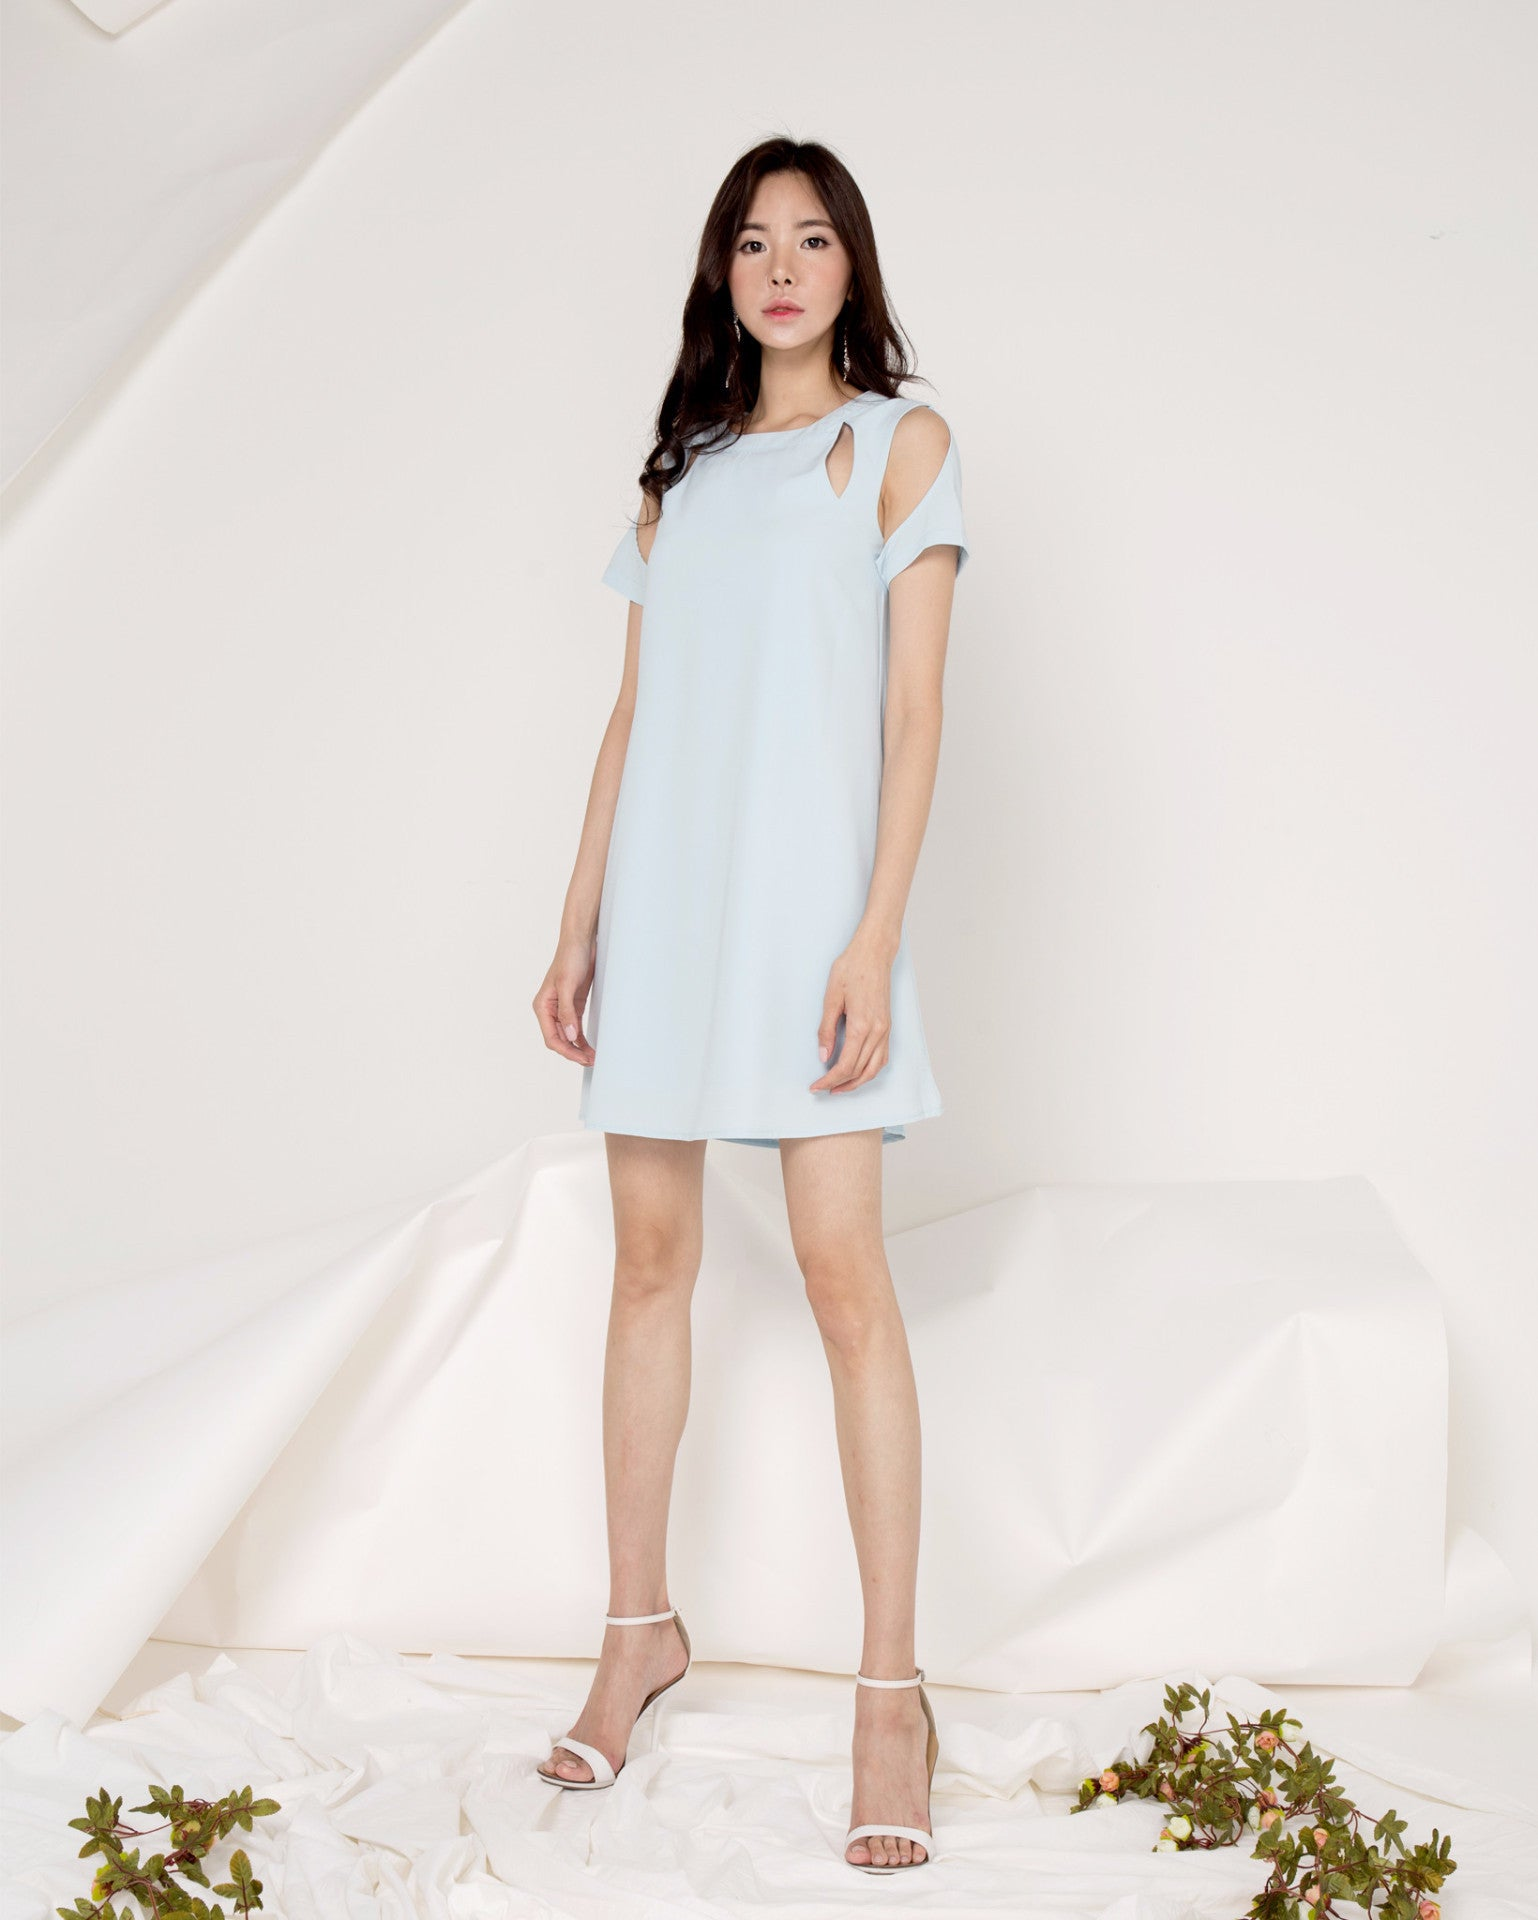 Ophelia Illusion Shift Dress - Pastel Blue – Theory Of Seven